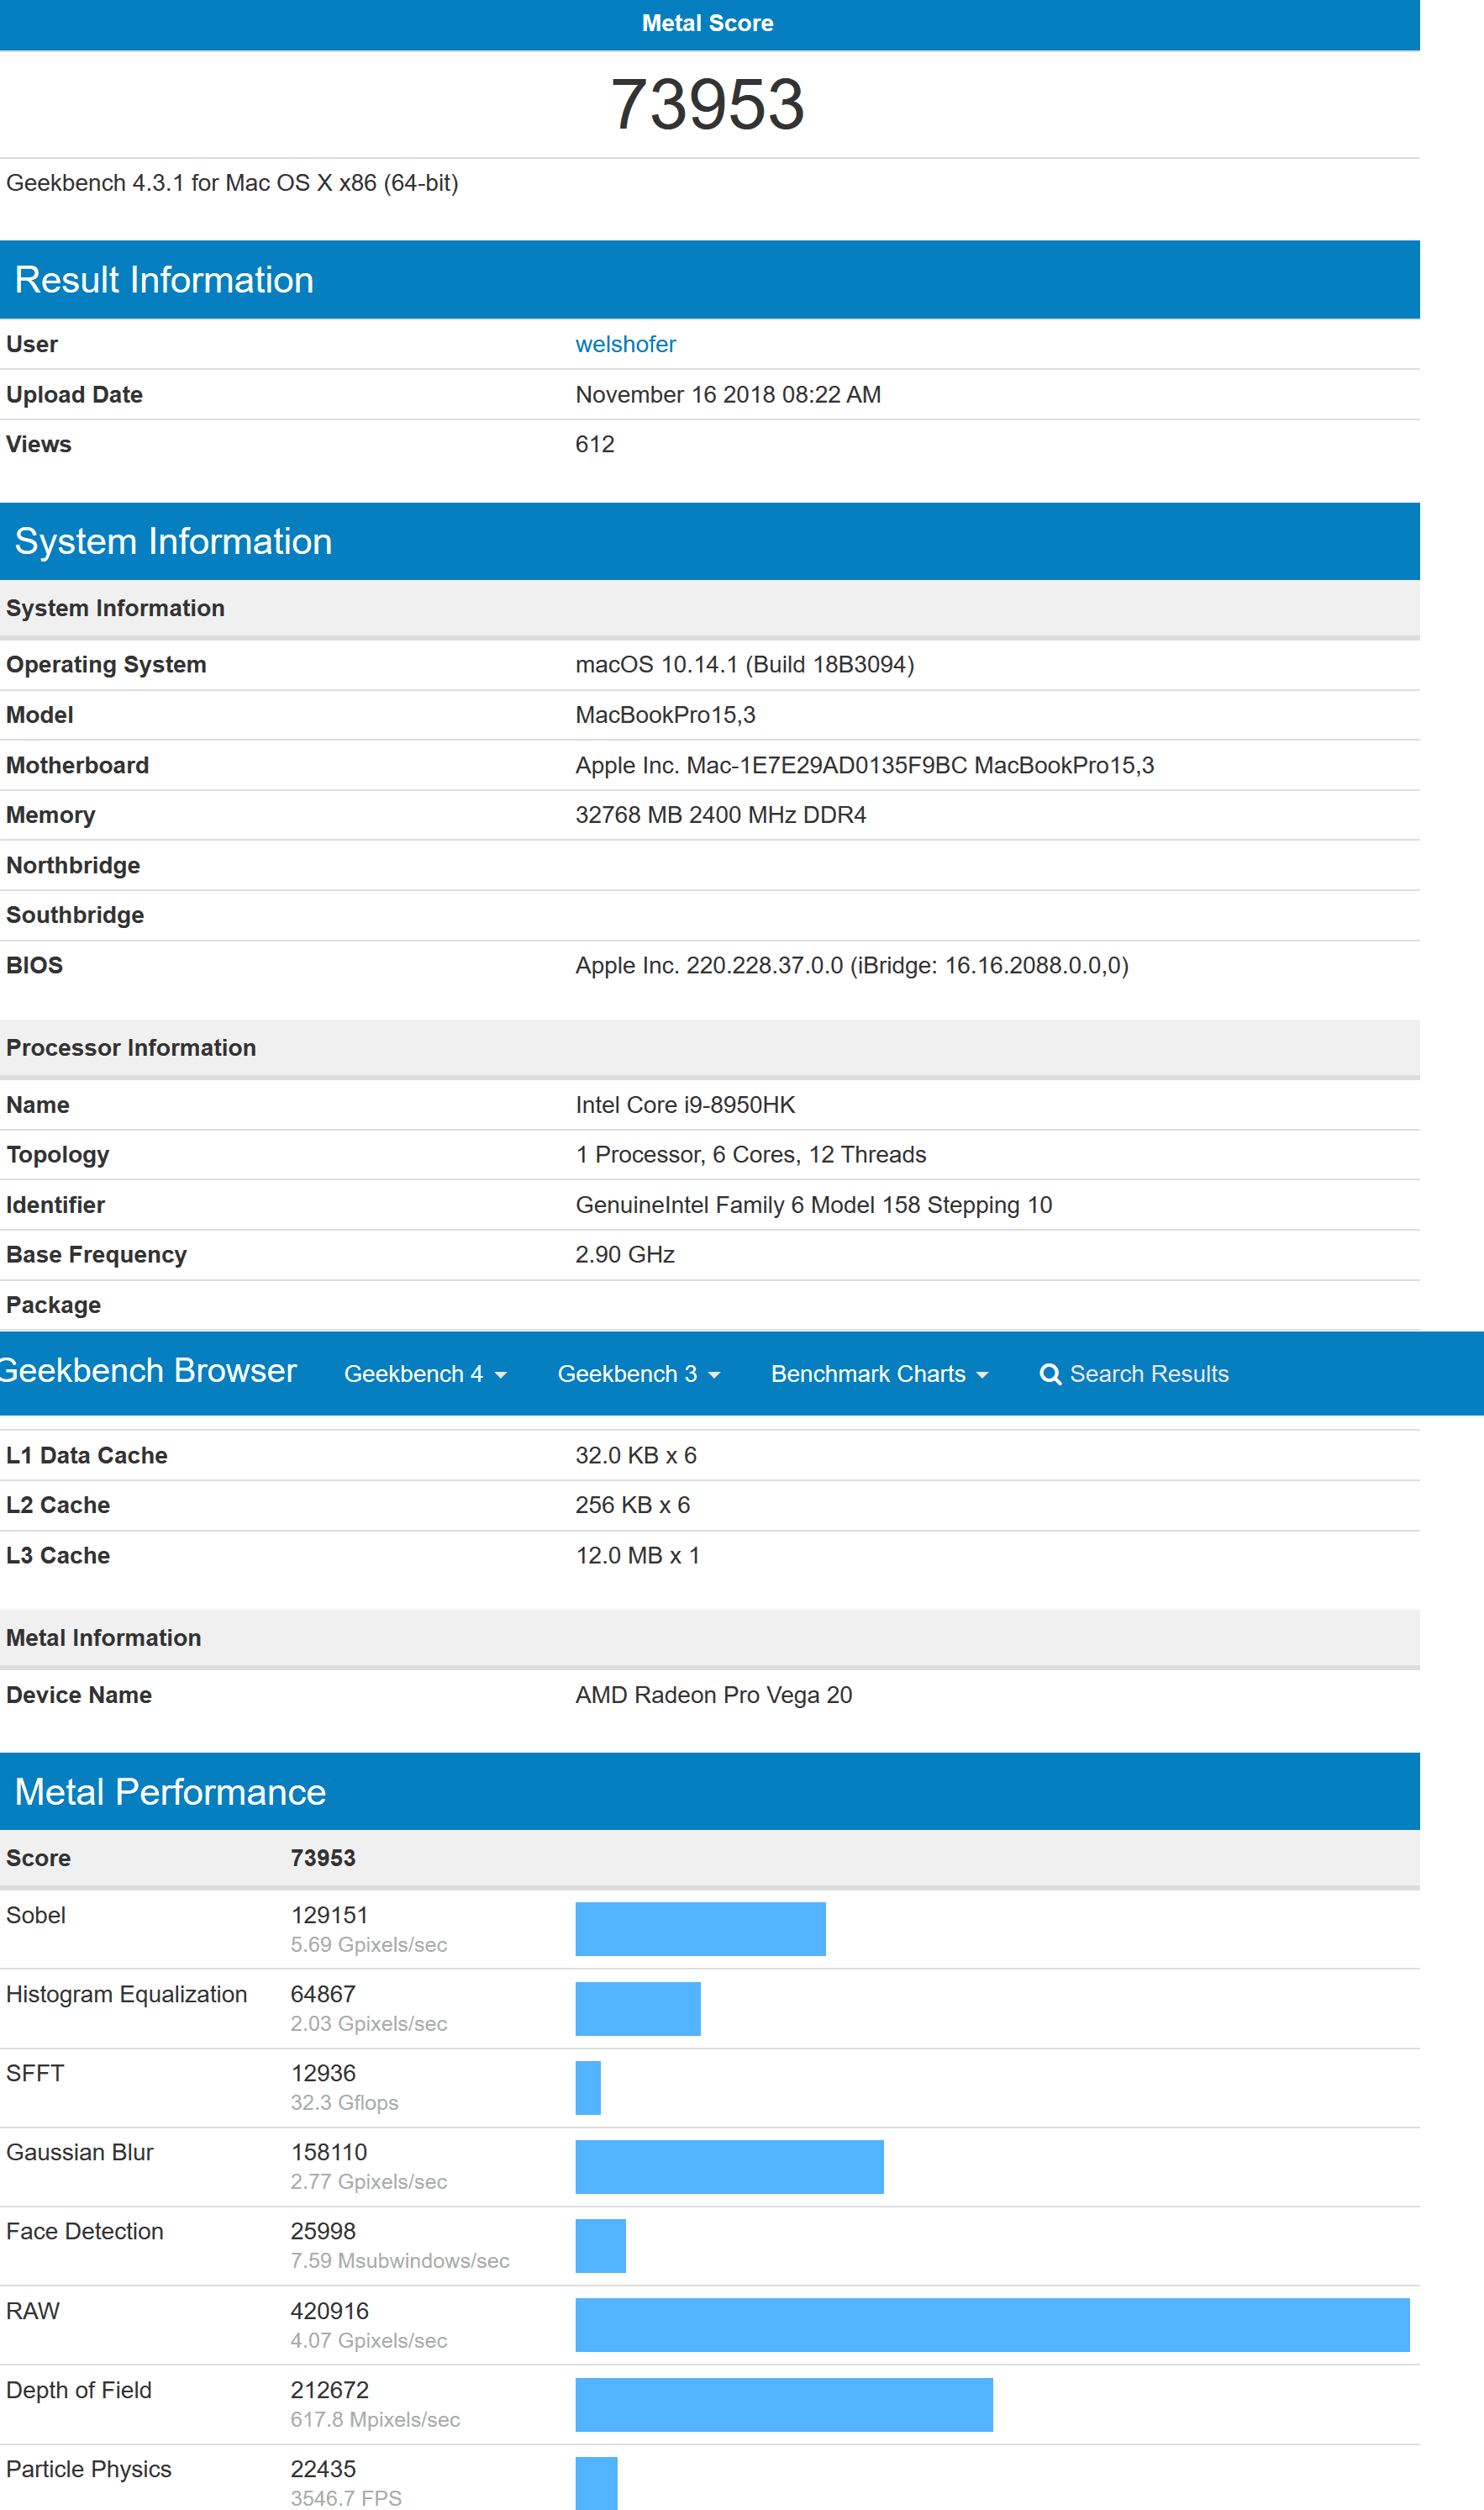 Geekbench Result For Amd Radeon Rx Vega 20 Spotted 73buzz